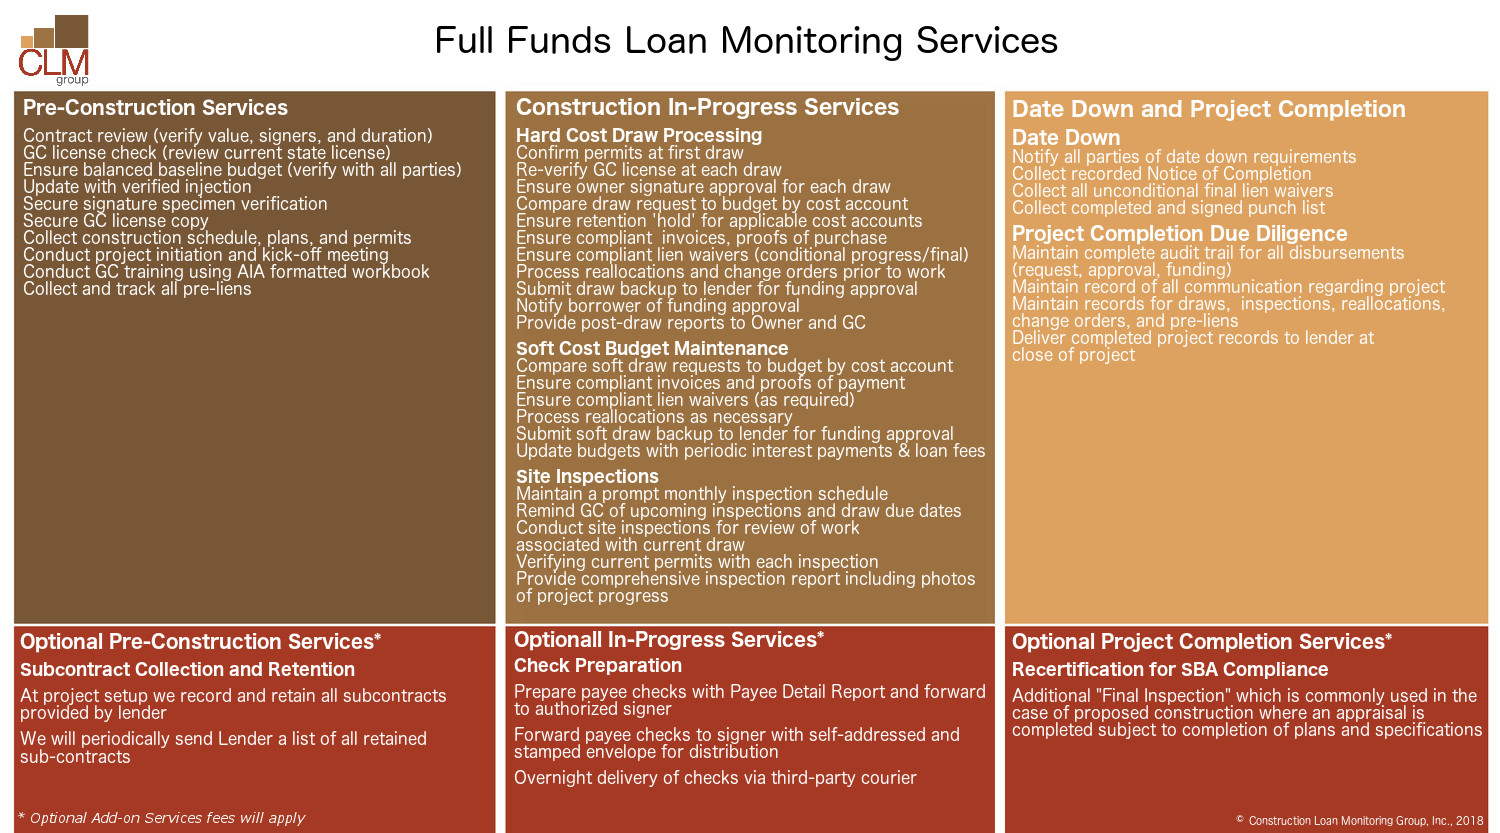 full fundsLoan monitoring services - click to view image